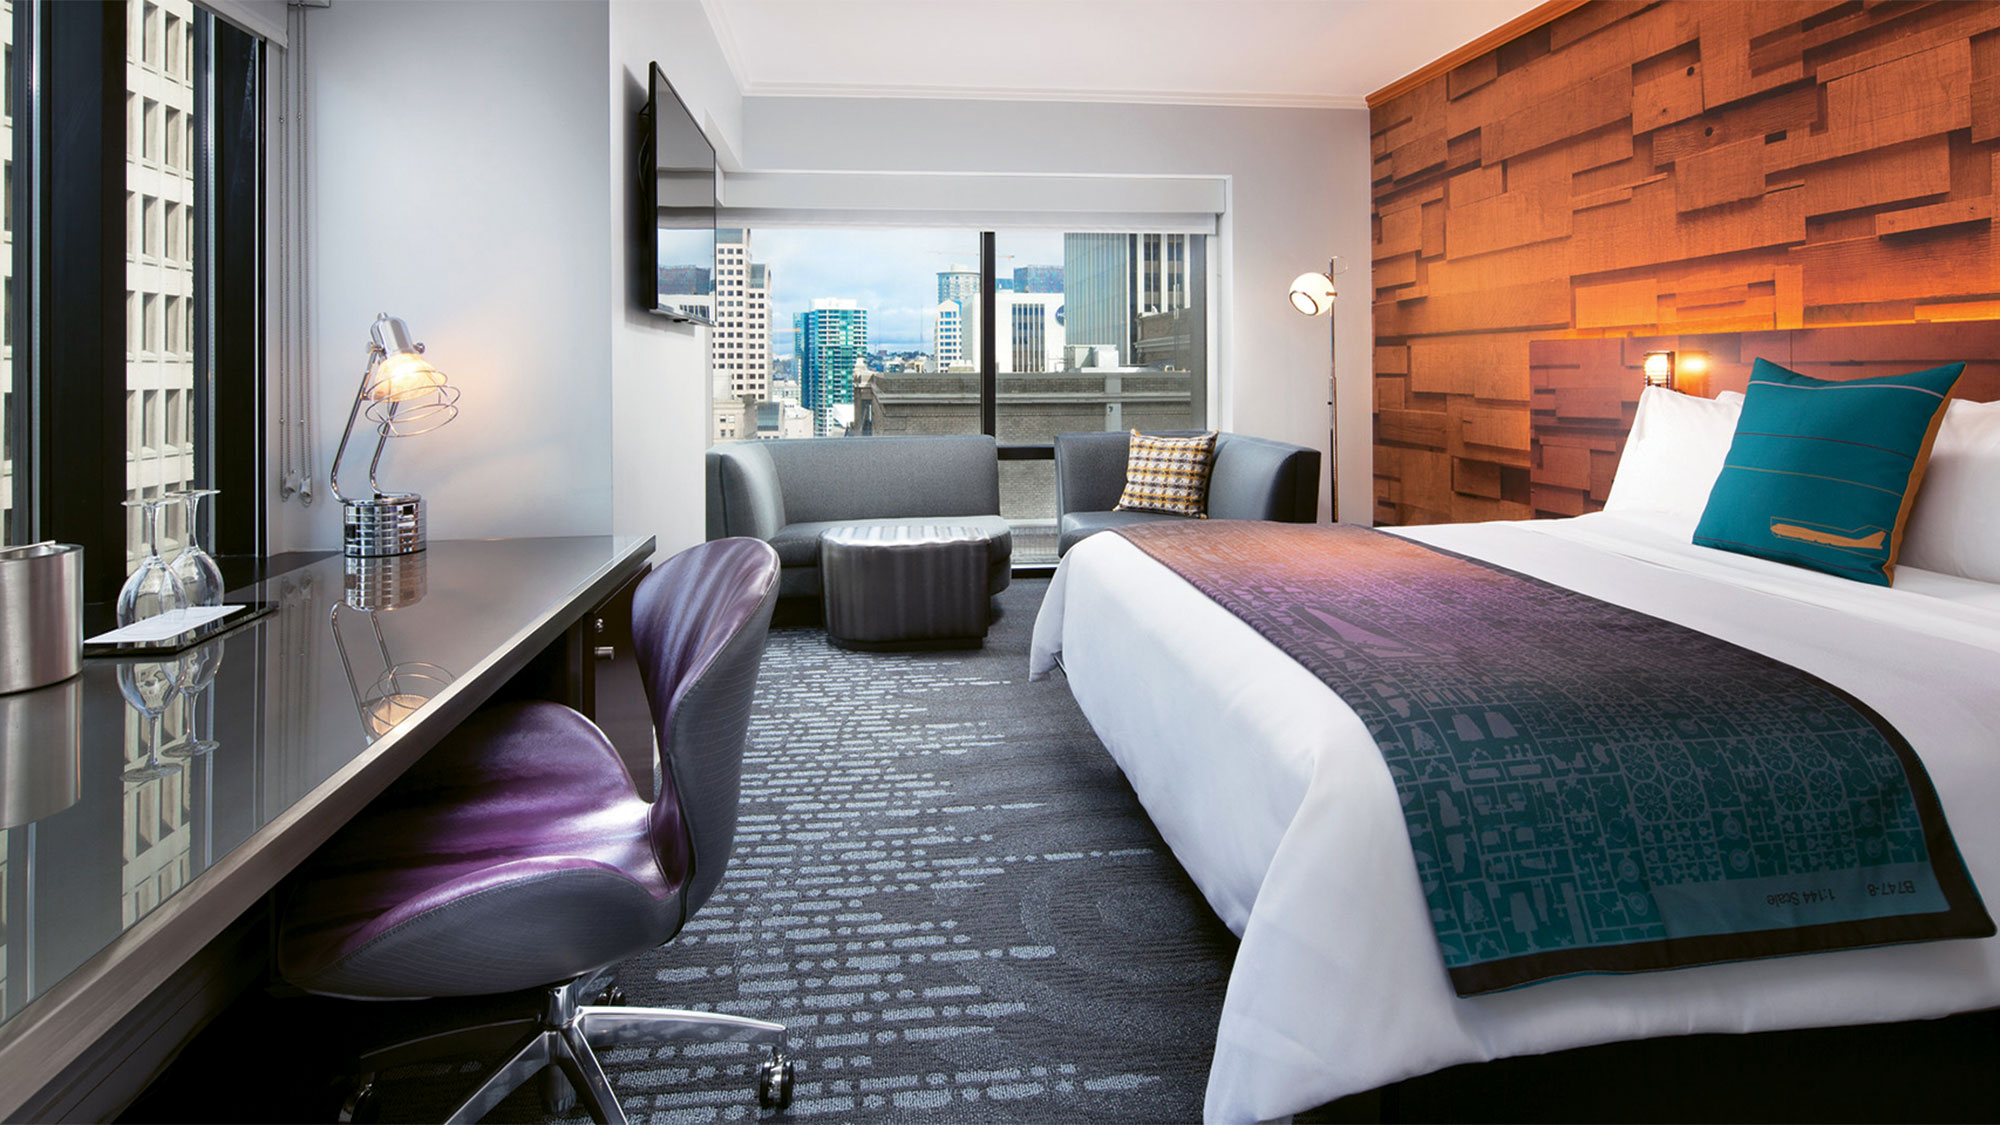 & About to turn 20 W Hotels deals with identity issues: Travel Weekly